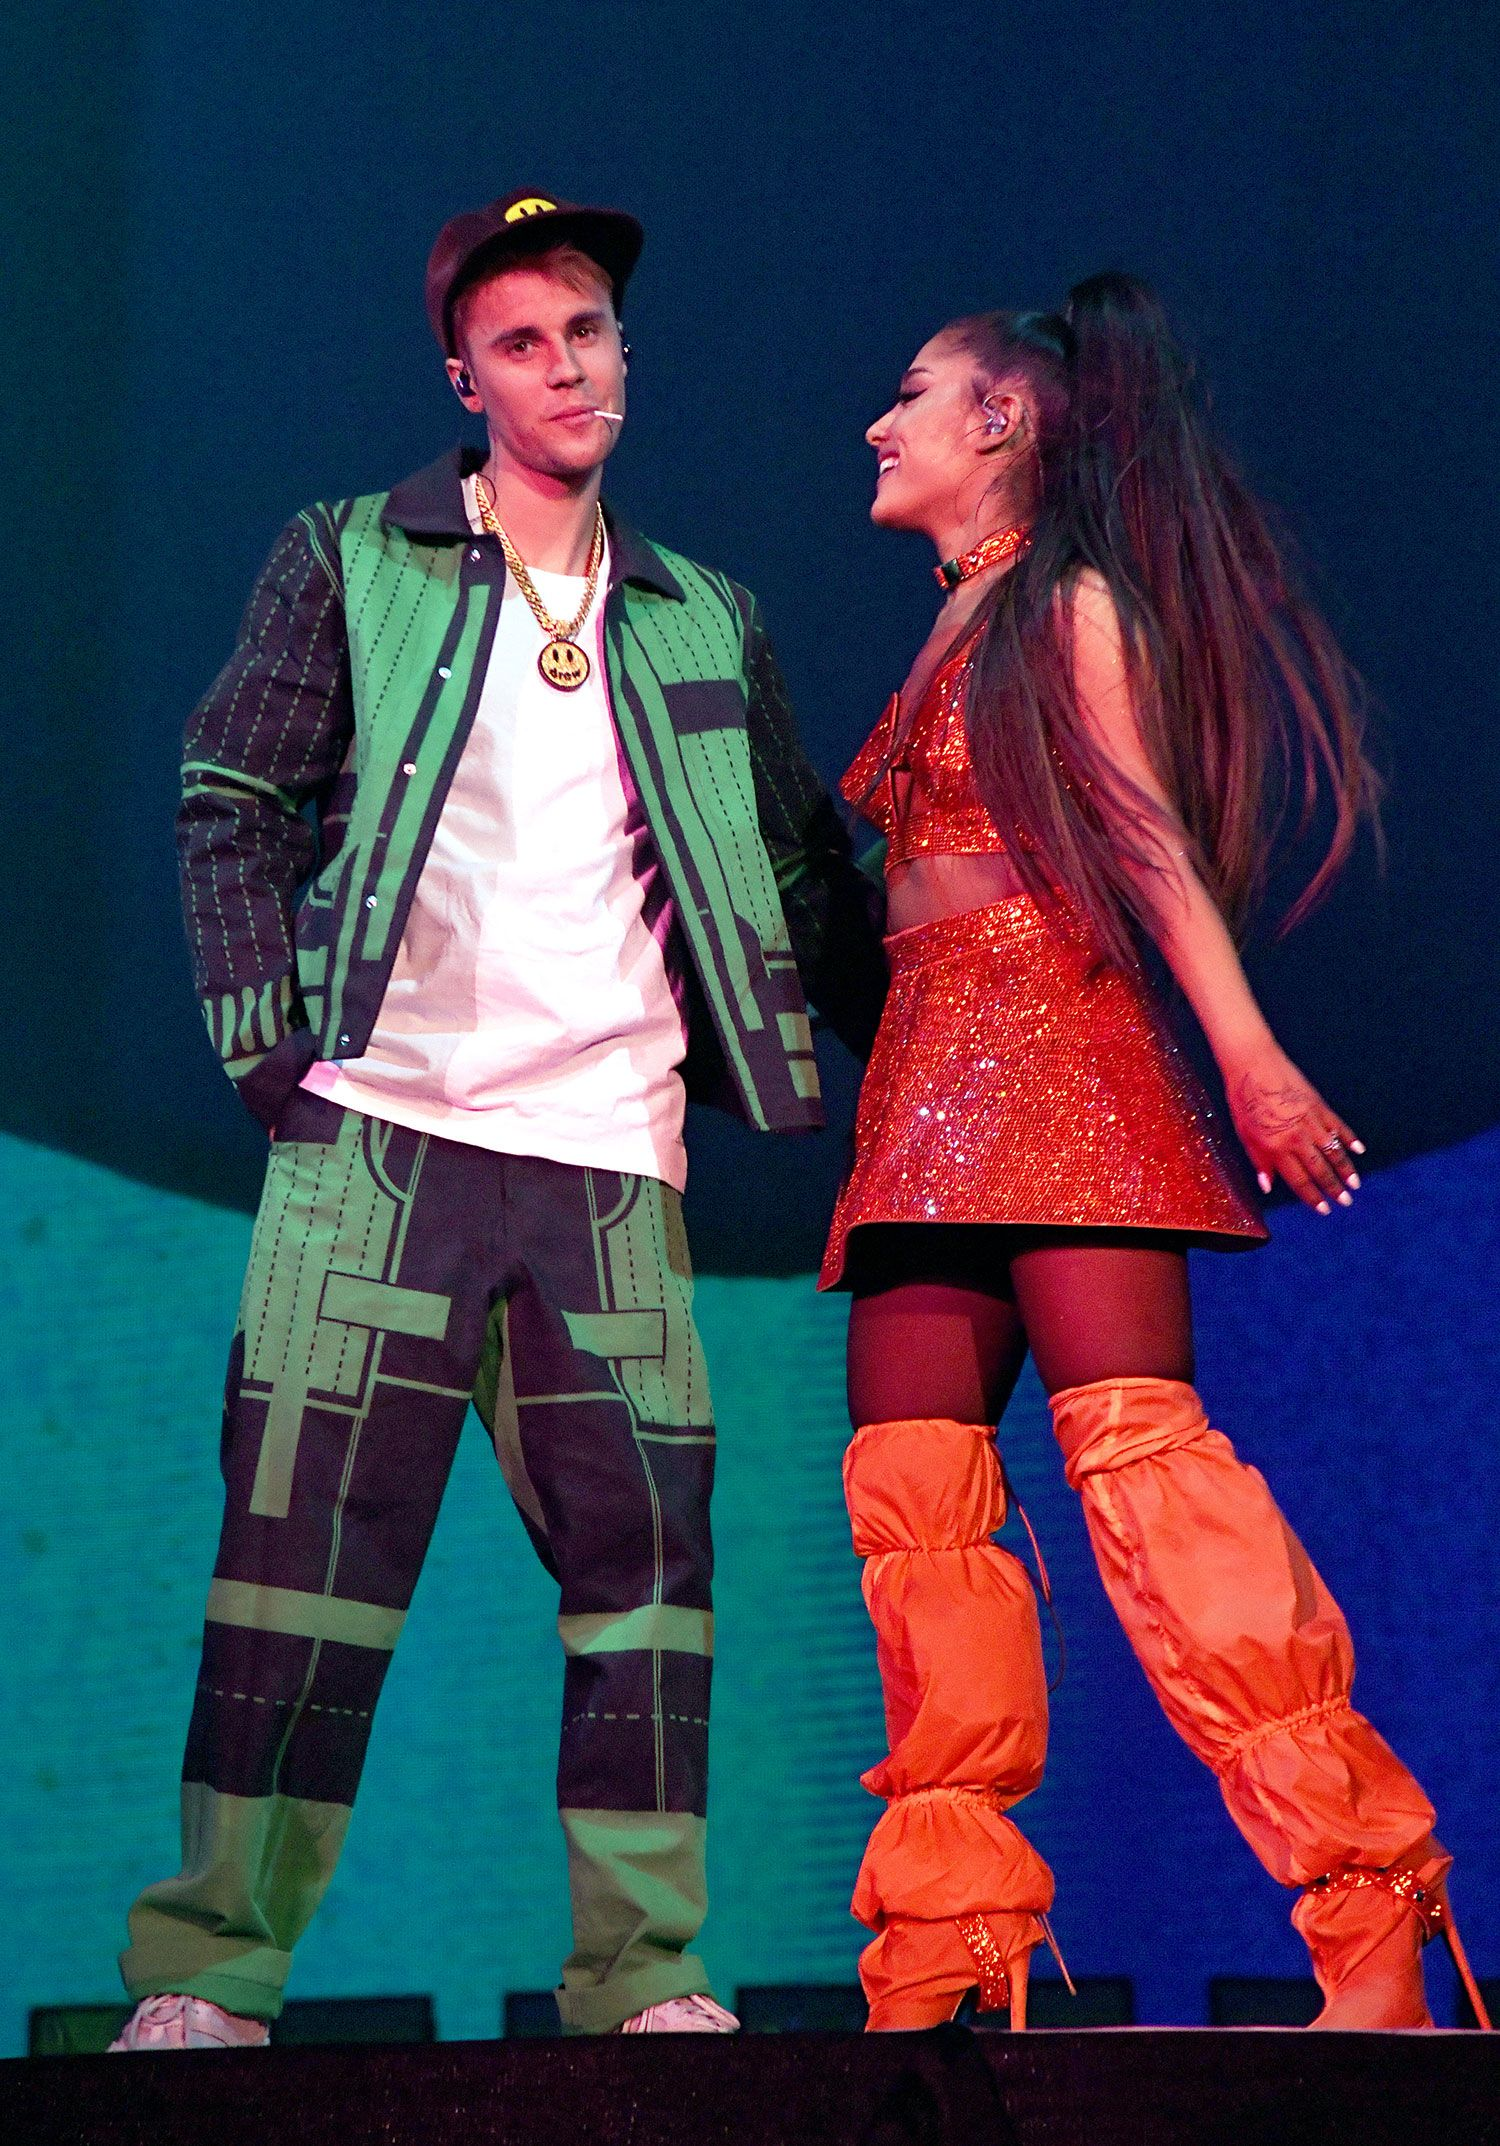 Watch Justin Bieber Perform With Ariana Grande At Coachella And Do First Concert In Years